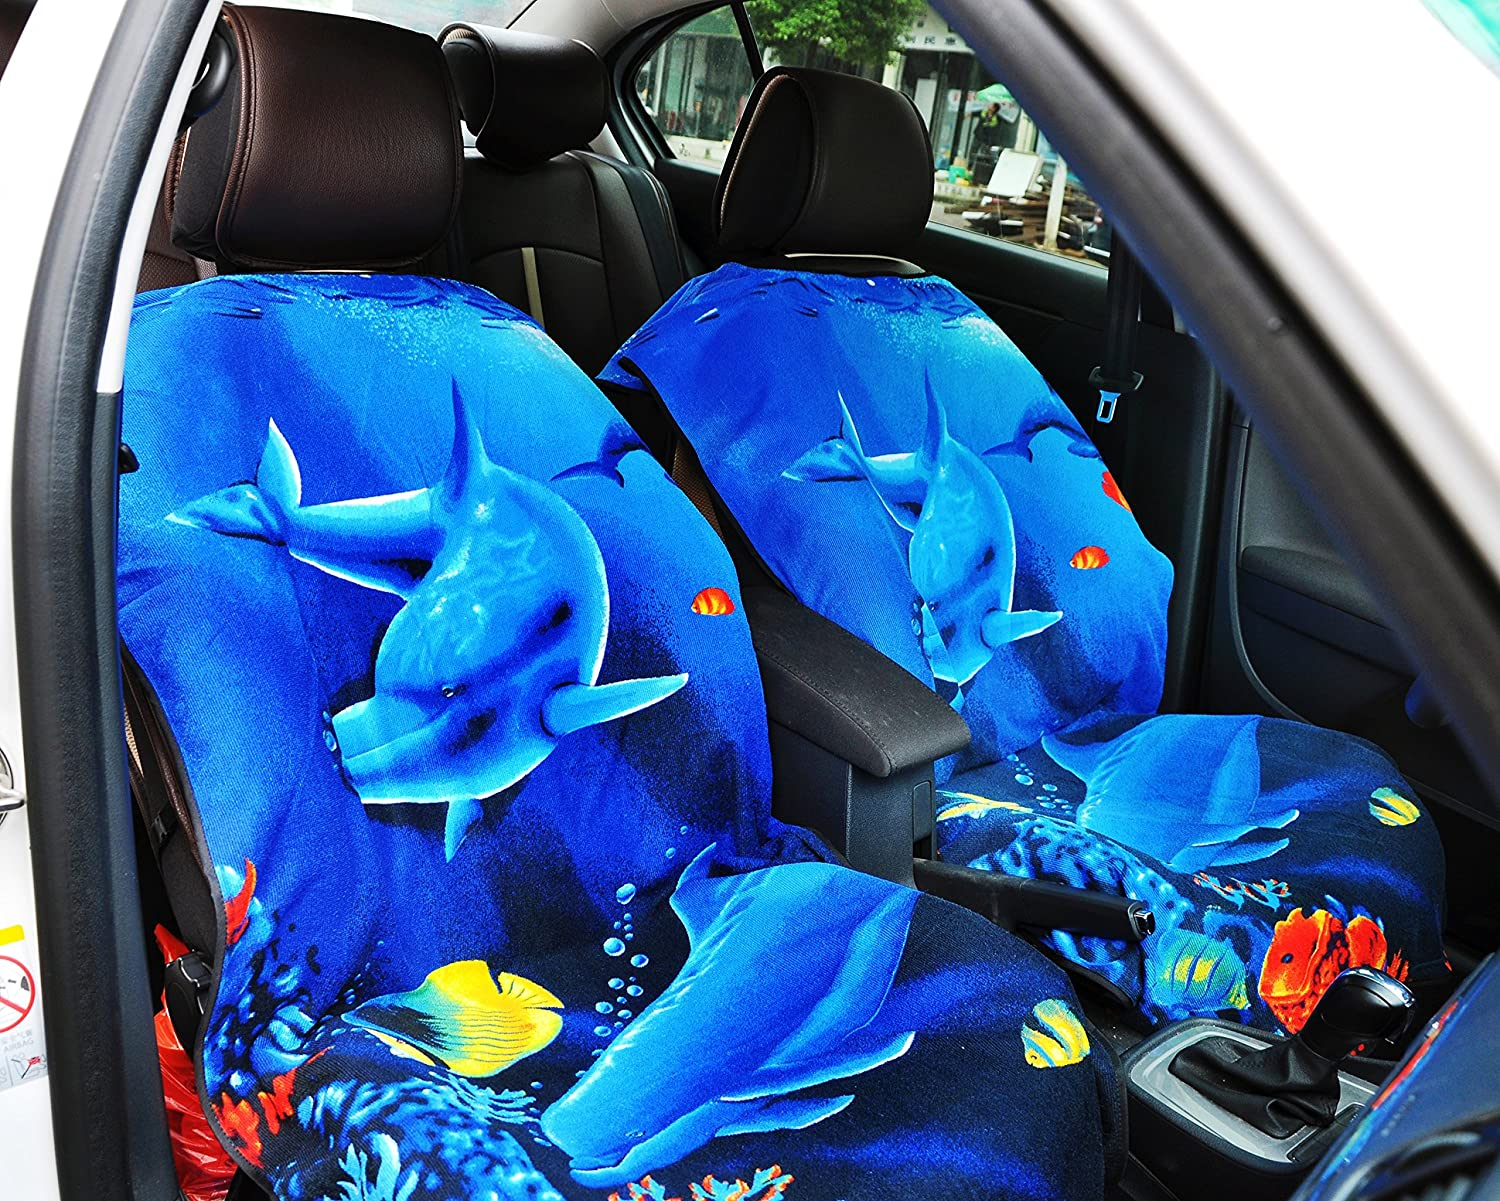 Y 40 THIEVES Removable Sweat Towel Protect Front Bucket Seat Free for Cars Truck SUV After Gym Biking Aqua Blue Swimming Runs Yoga Surfing /& Beach Trips